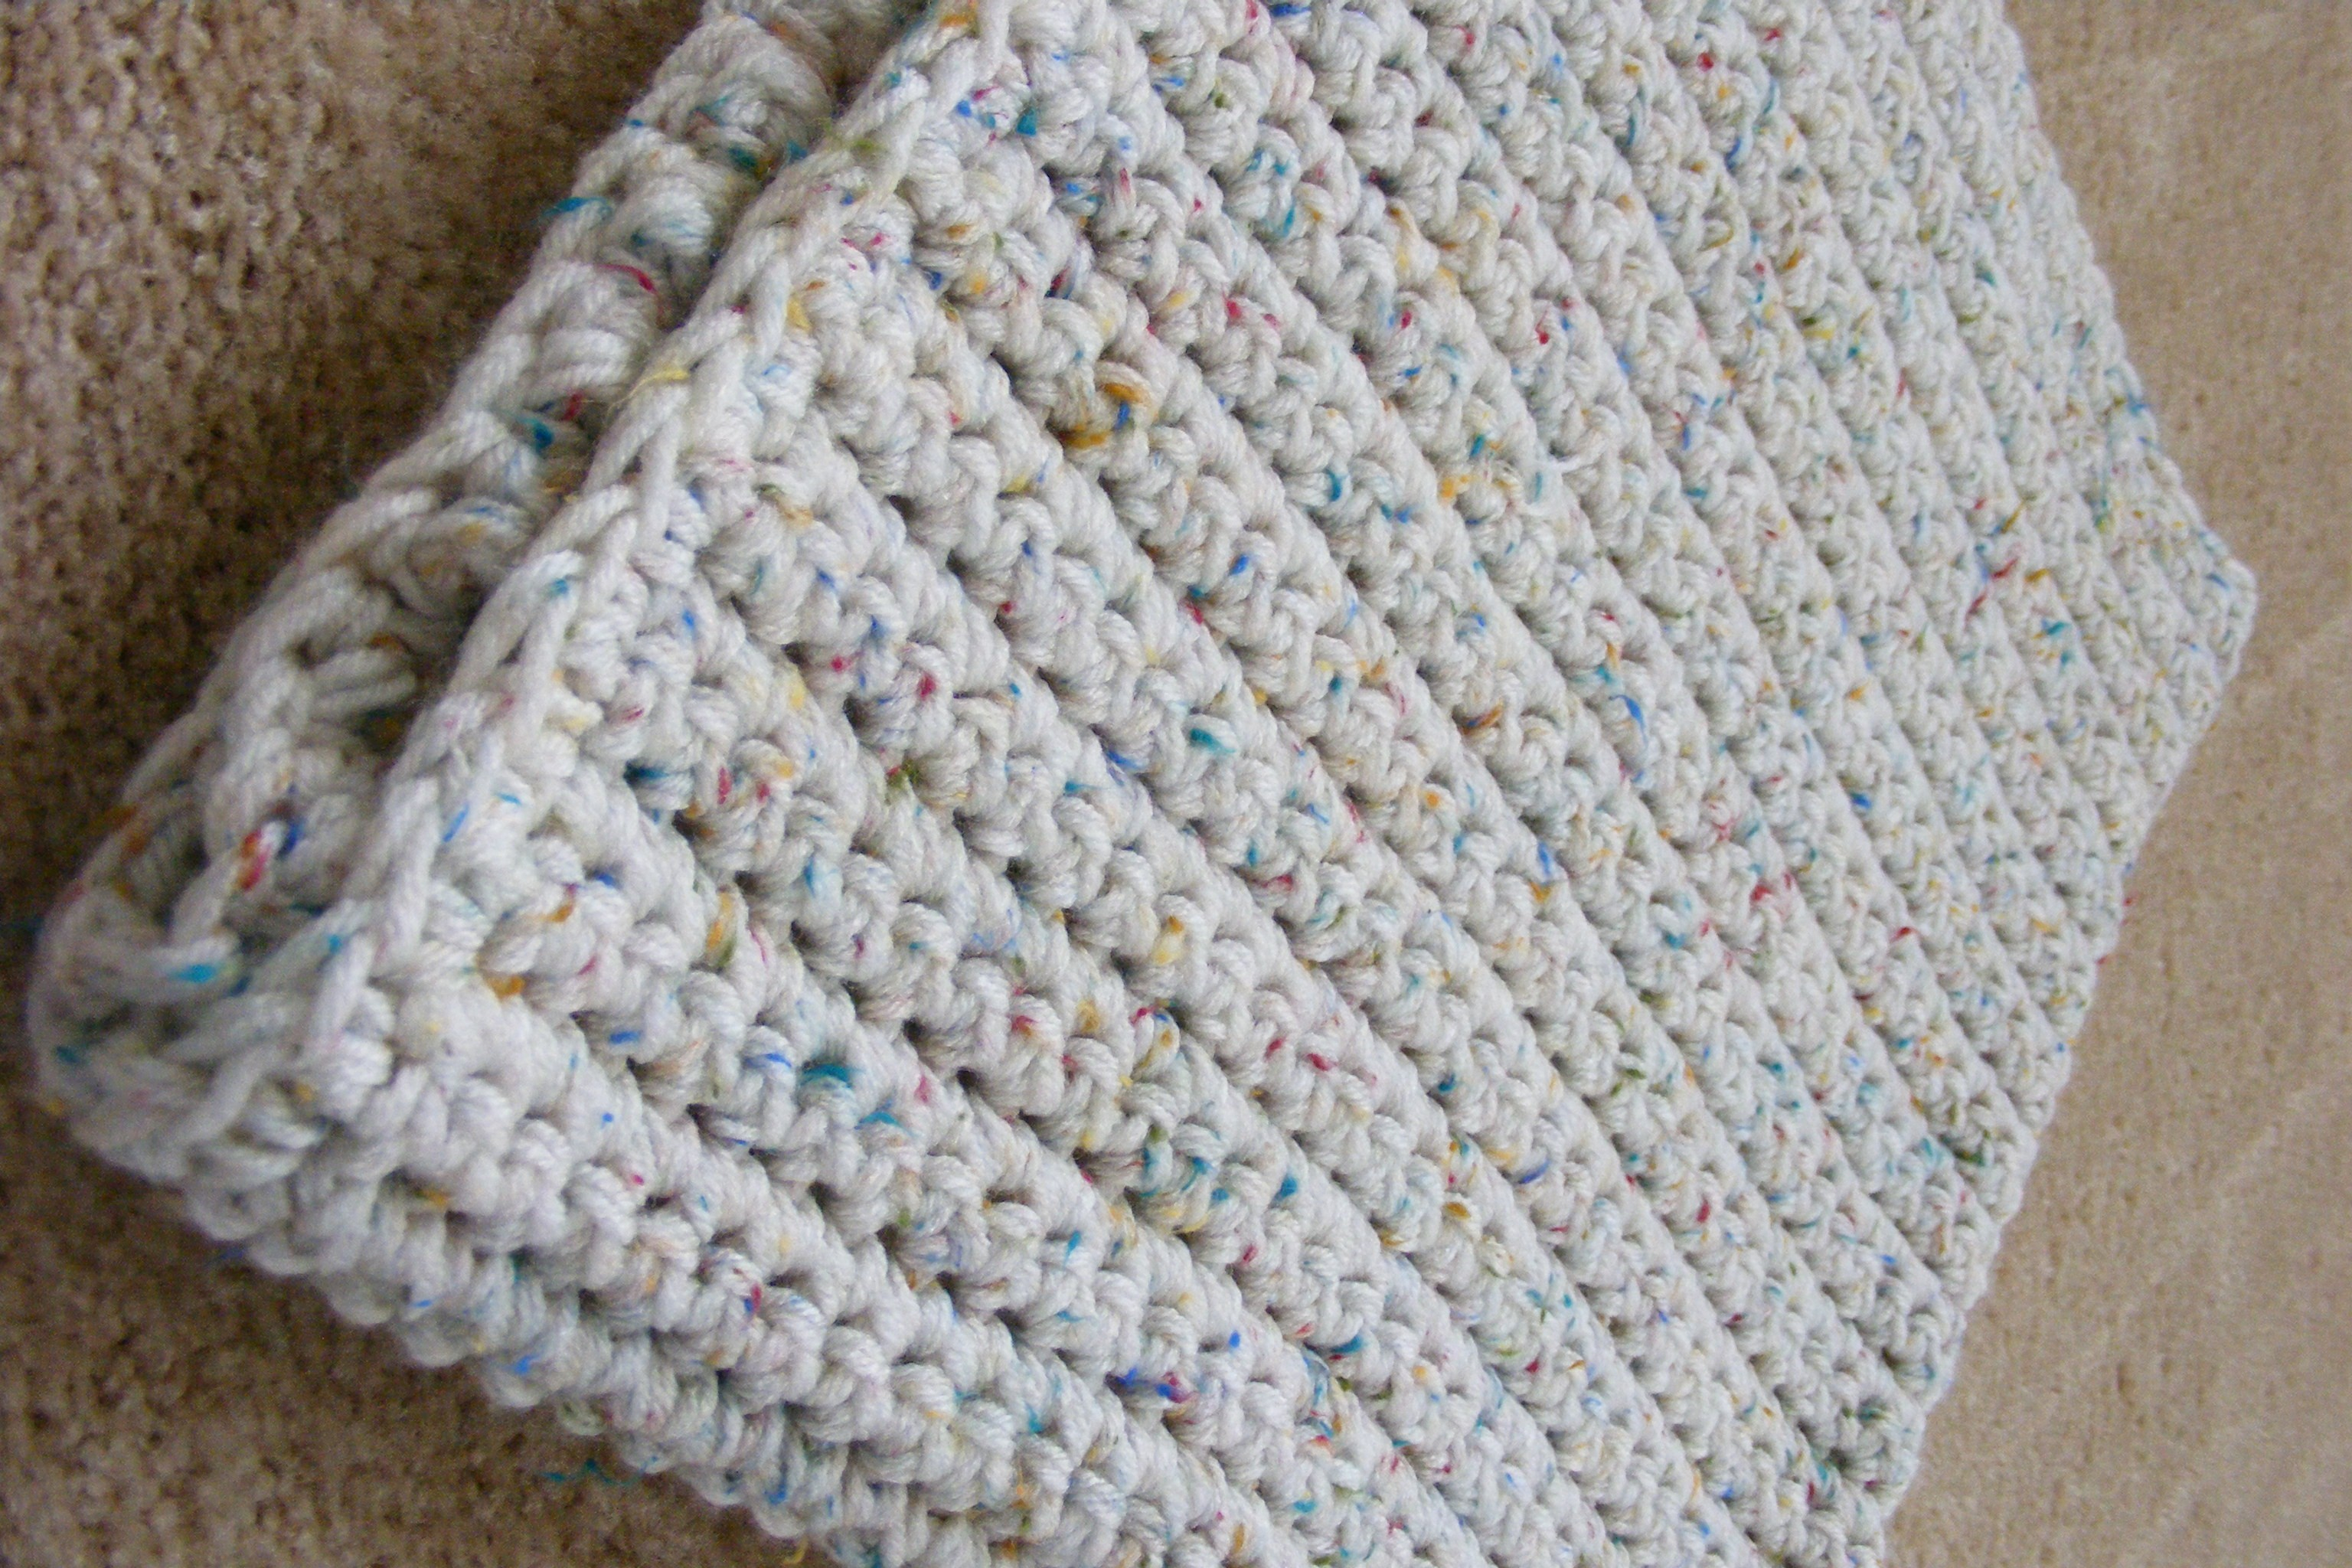 Begginer Crochet Projects Baby Blankets Easy Knitting Patterns For Blankets For Beginners Crochet And Knit